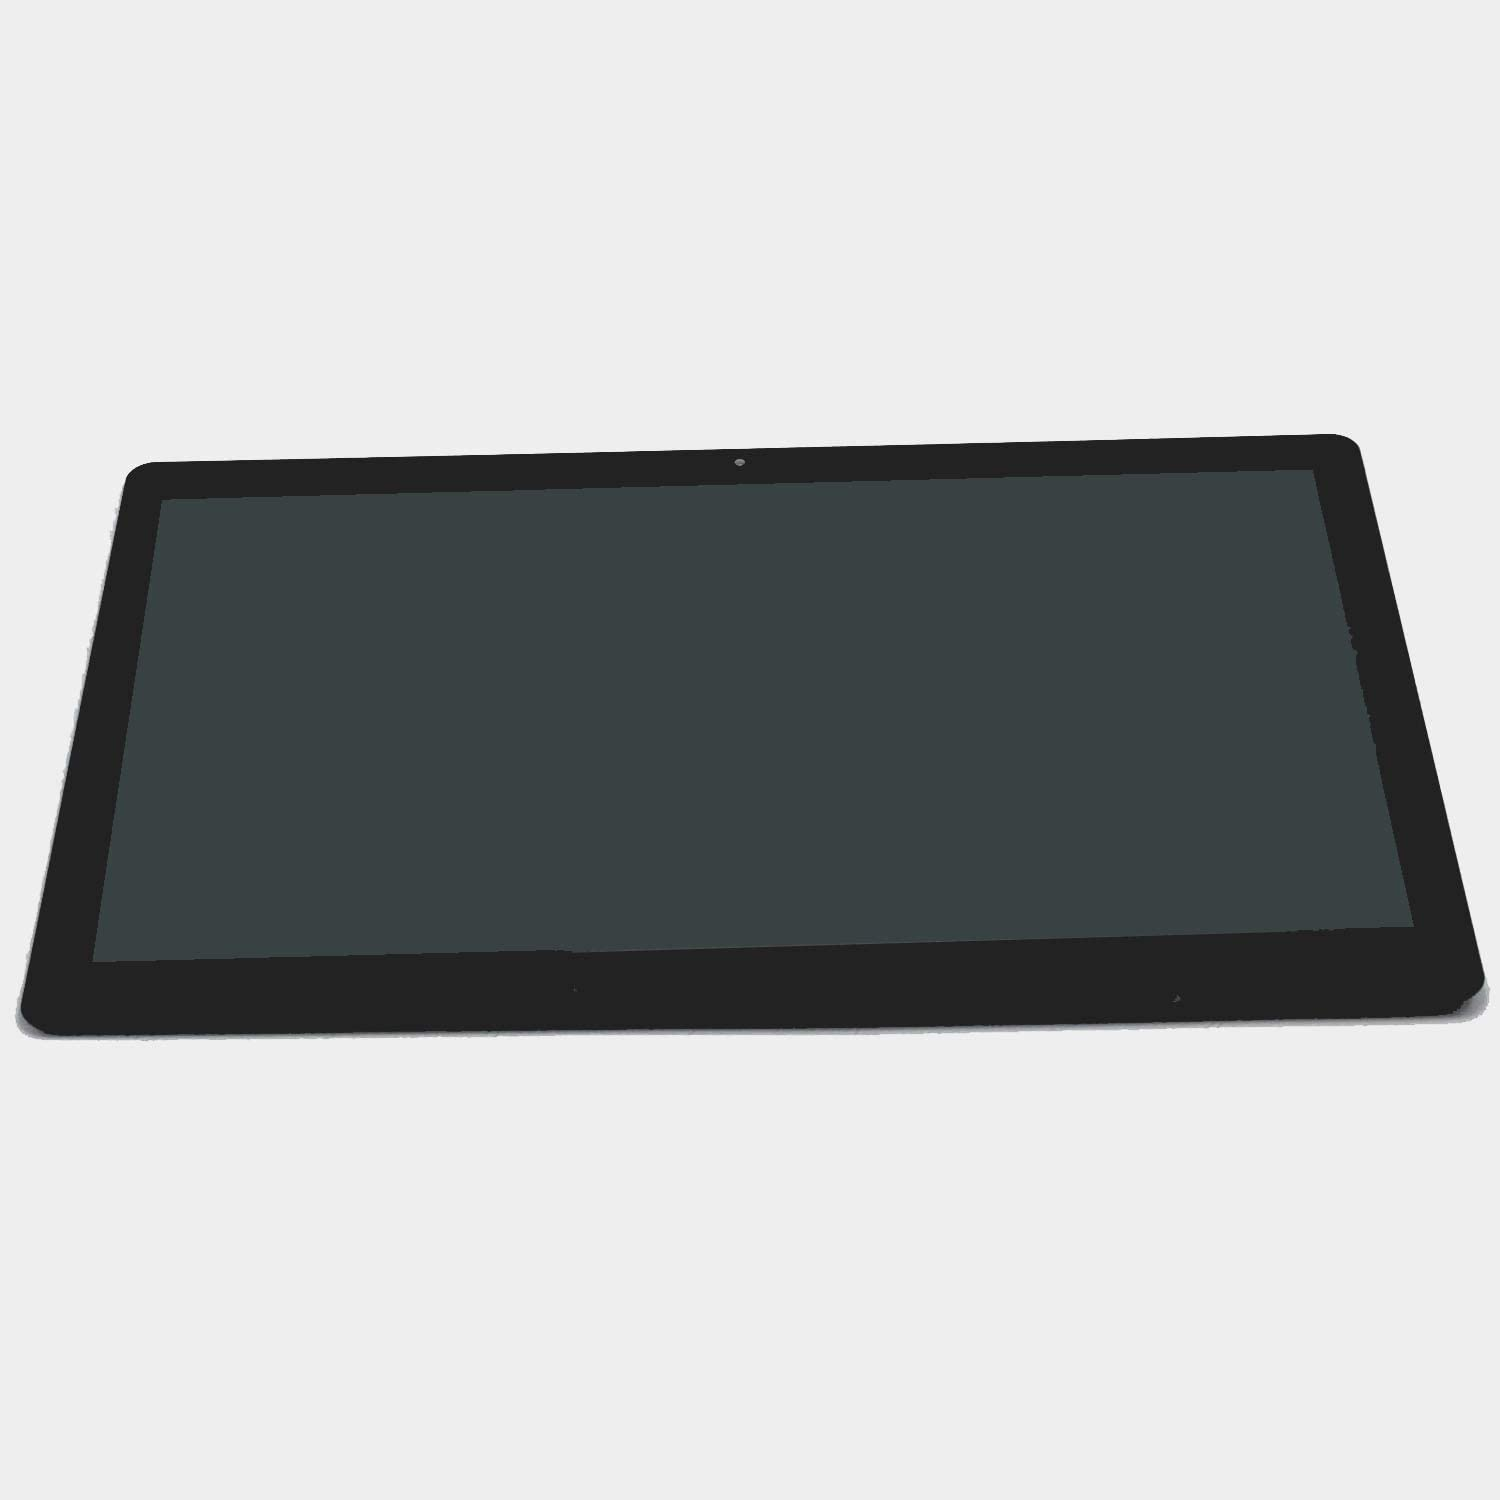 Bblon 15.6'' Full LCD Display Touch Screen Digitizer Assembly for DELL Inspiron 15 7558 P55F